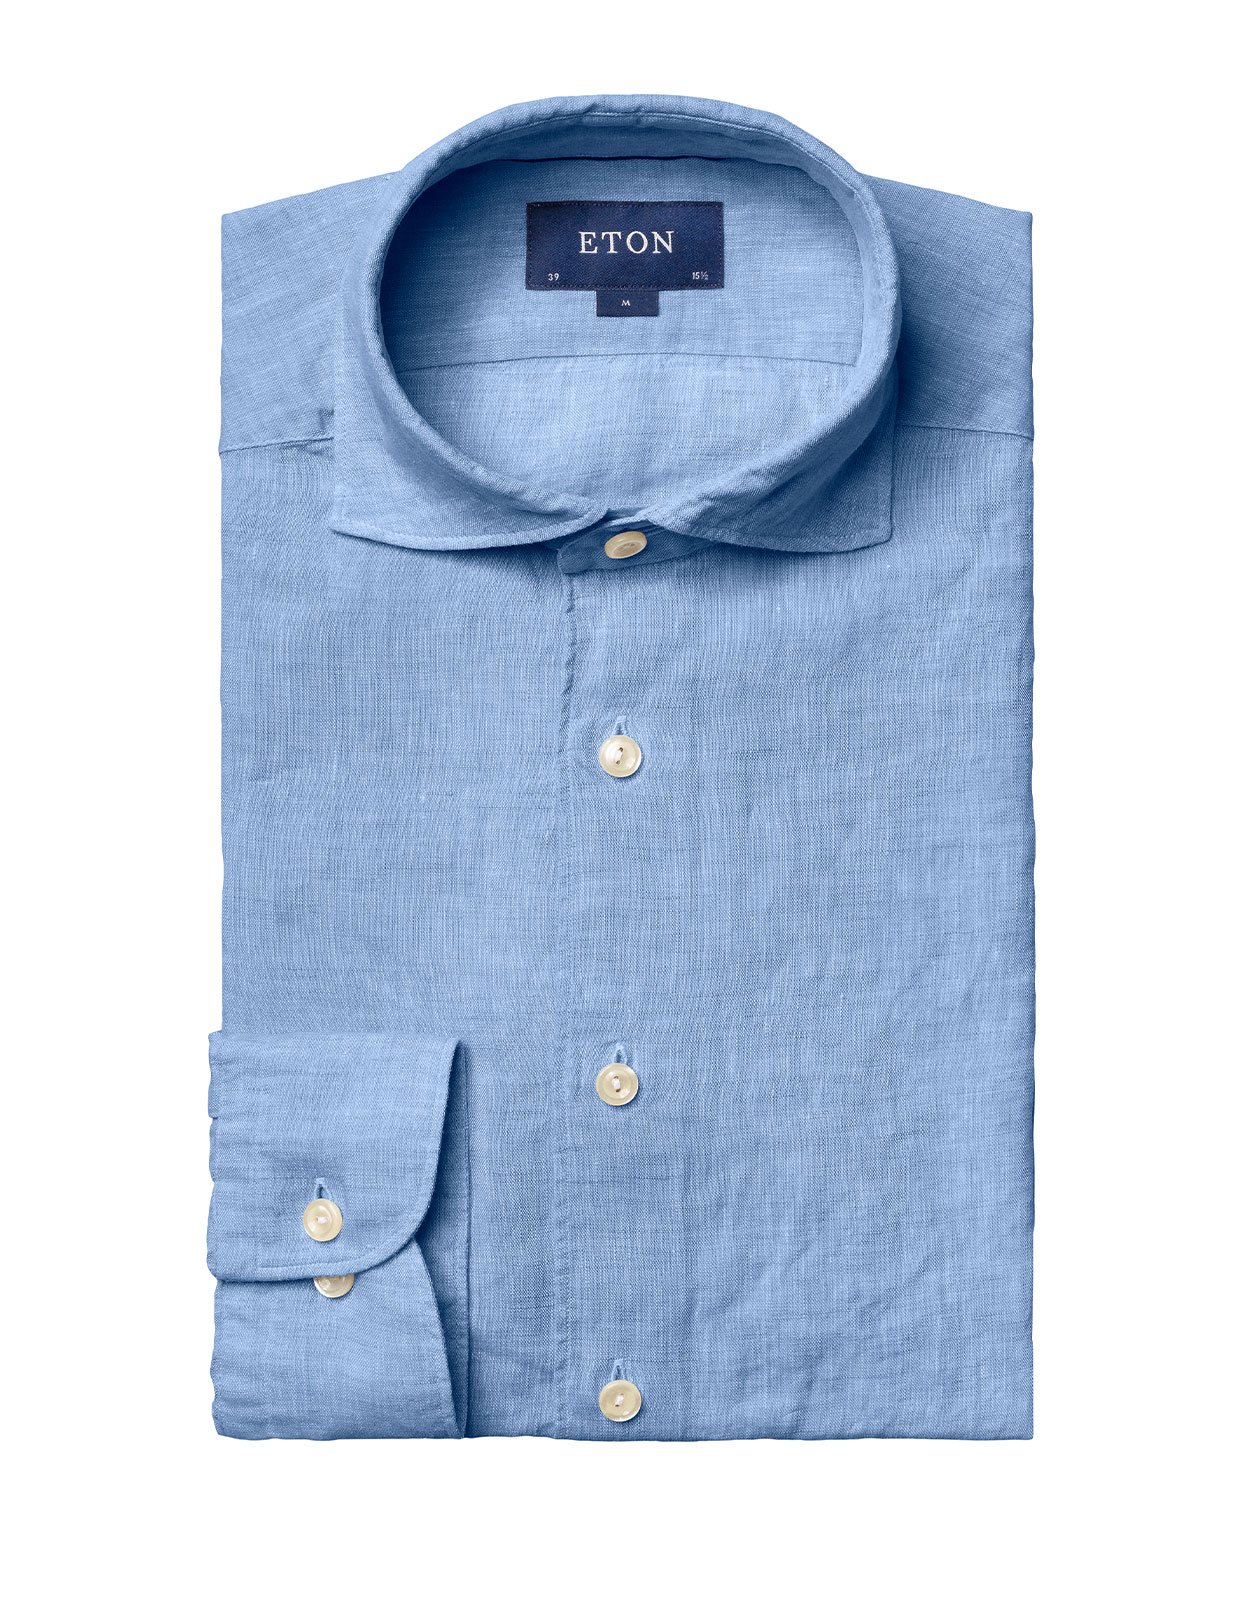 Slim Fit Soft Linen Shirt Blue Stl 38